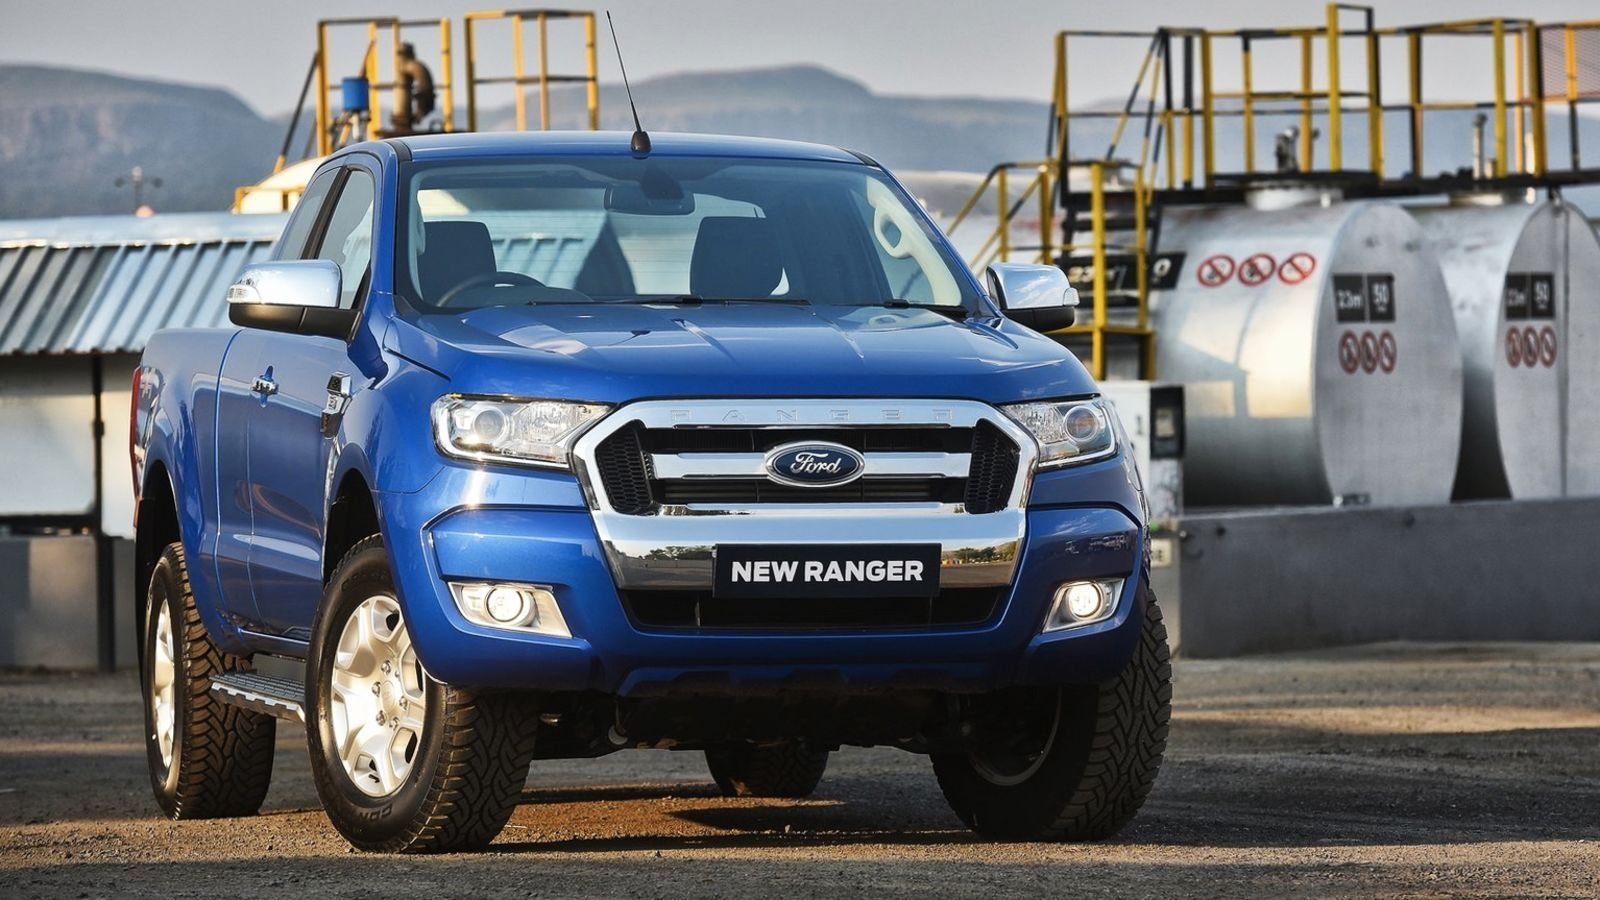 2018 Ford Ranger | Exterior High Resolution Wallpapers | New Car ...